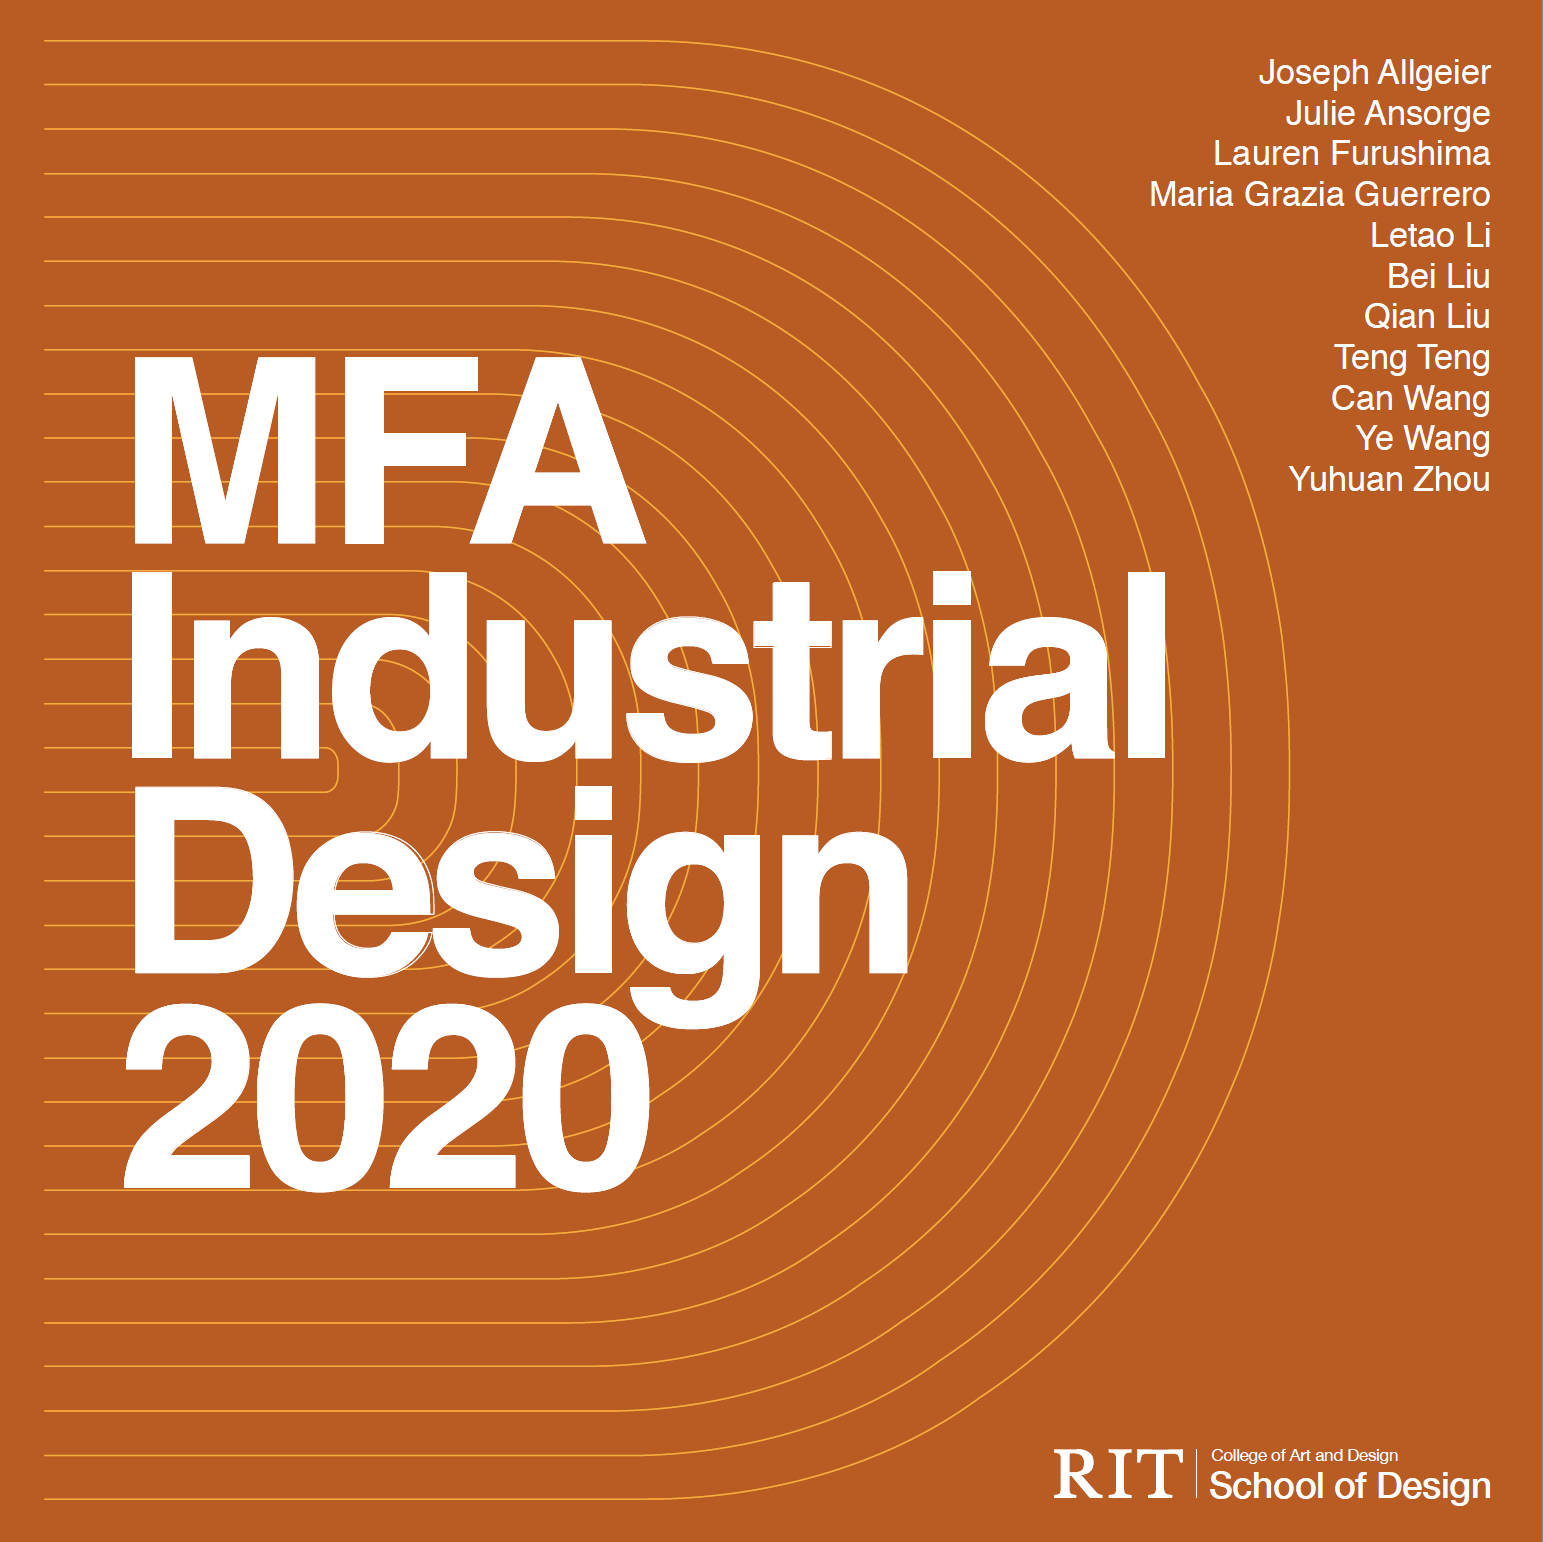 MFA Industrial Design 2020 show poster